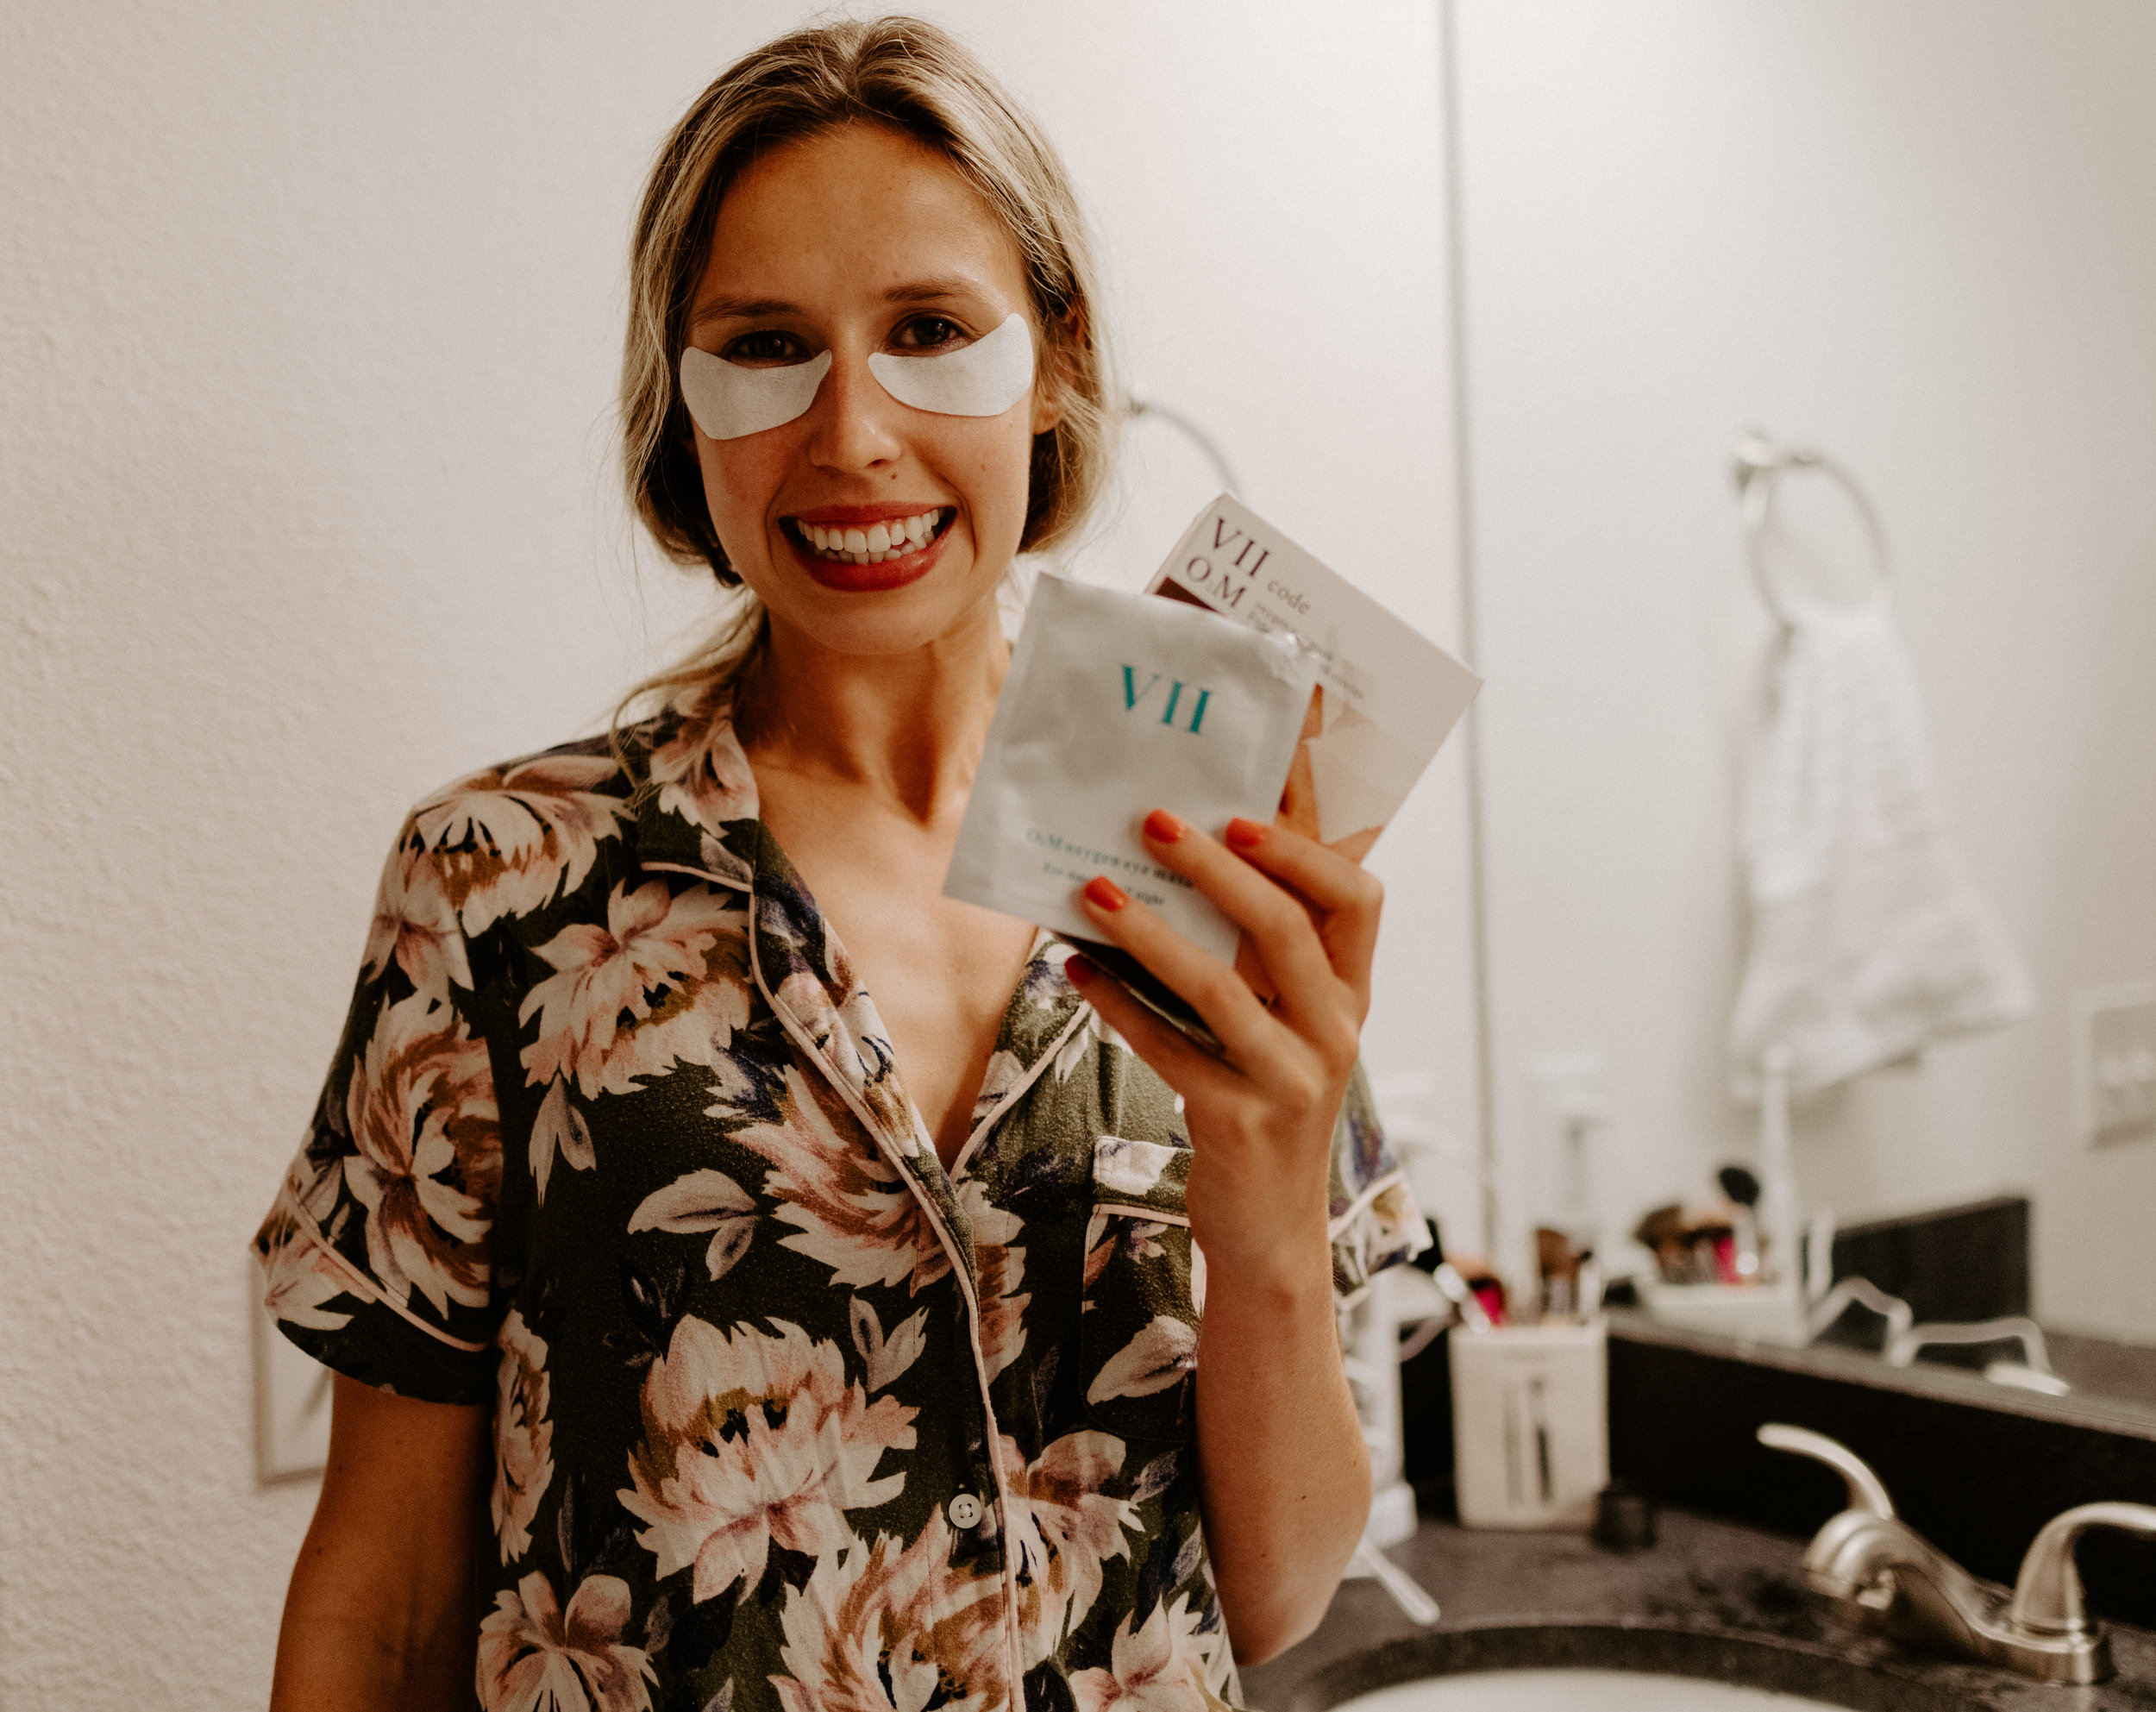 My Nighttime Skincare Routine | The Simplistic Chic